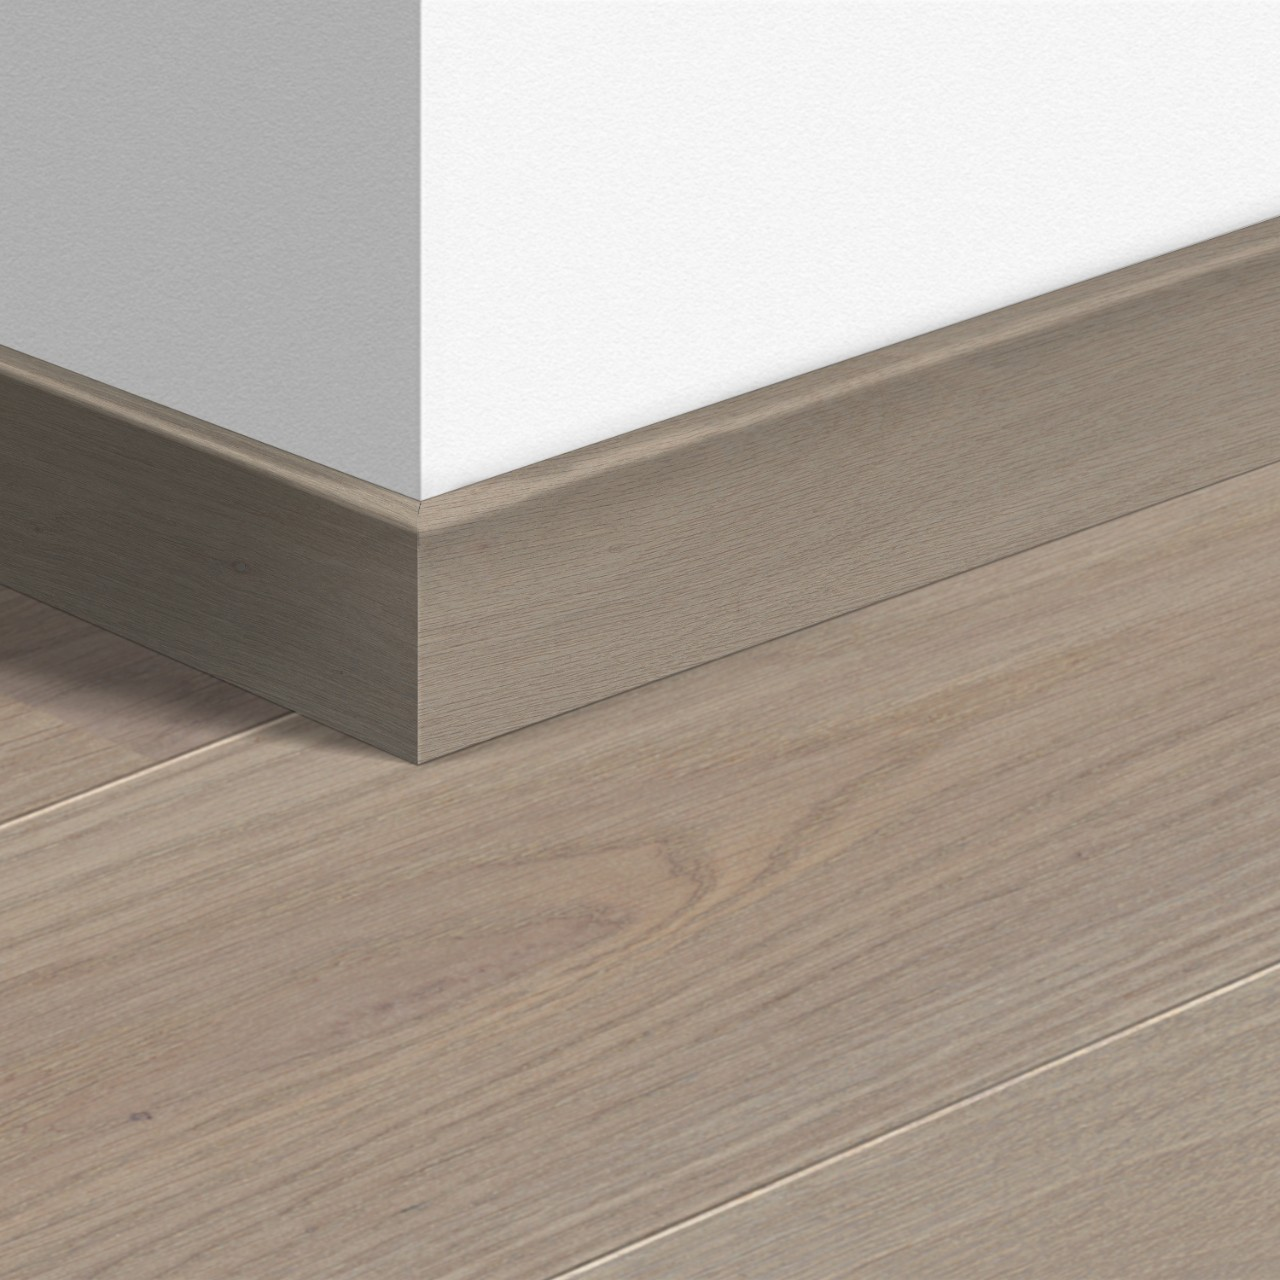 QSWPPSKR Parquet Accessories Parquet Skirting Board (matching colour) QSWPPSKR03092